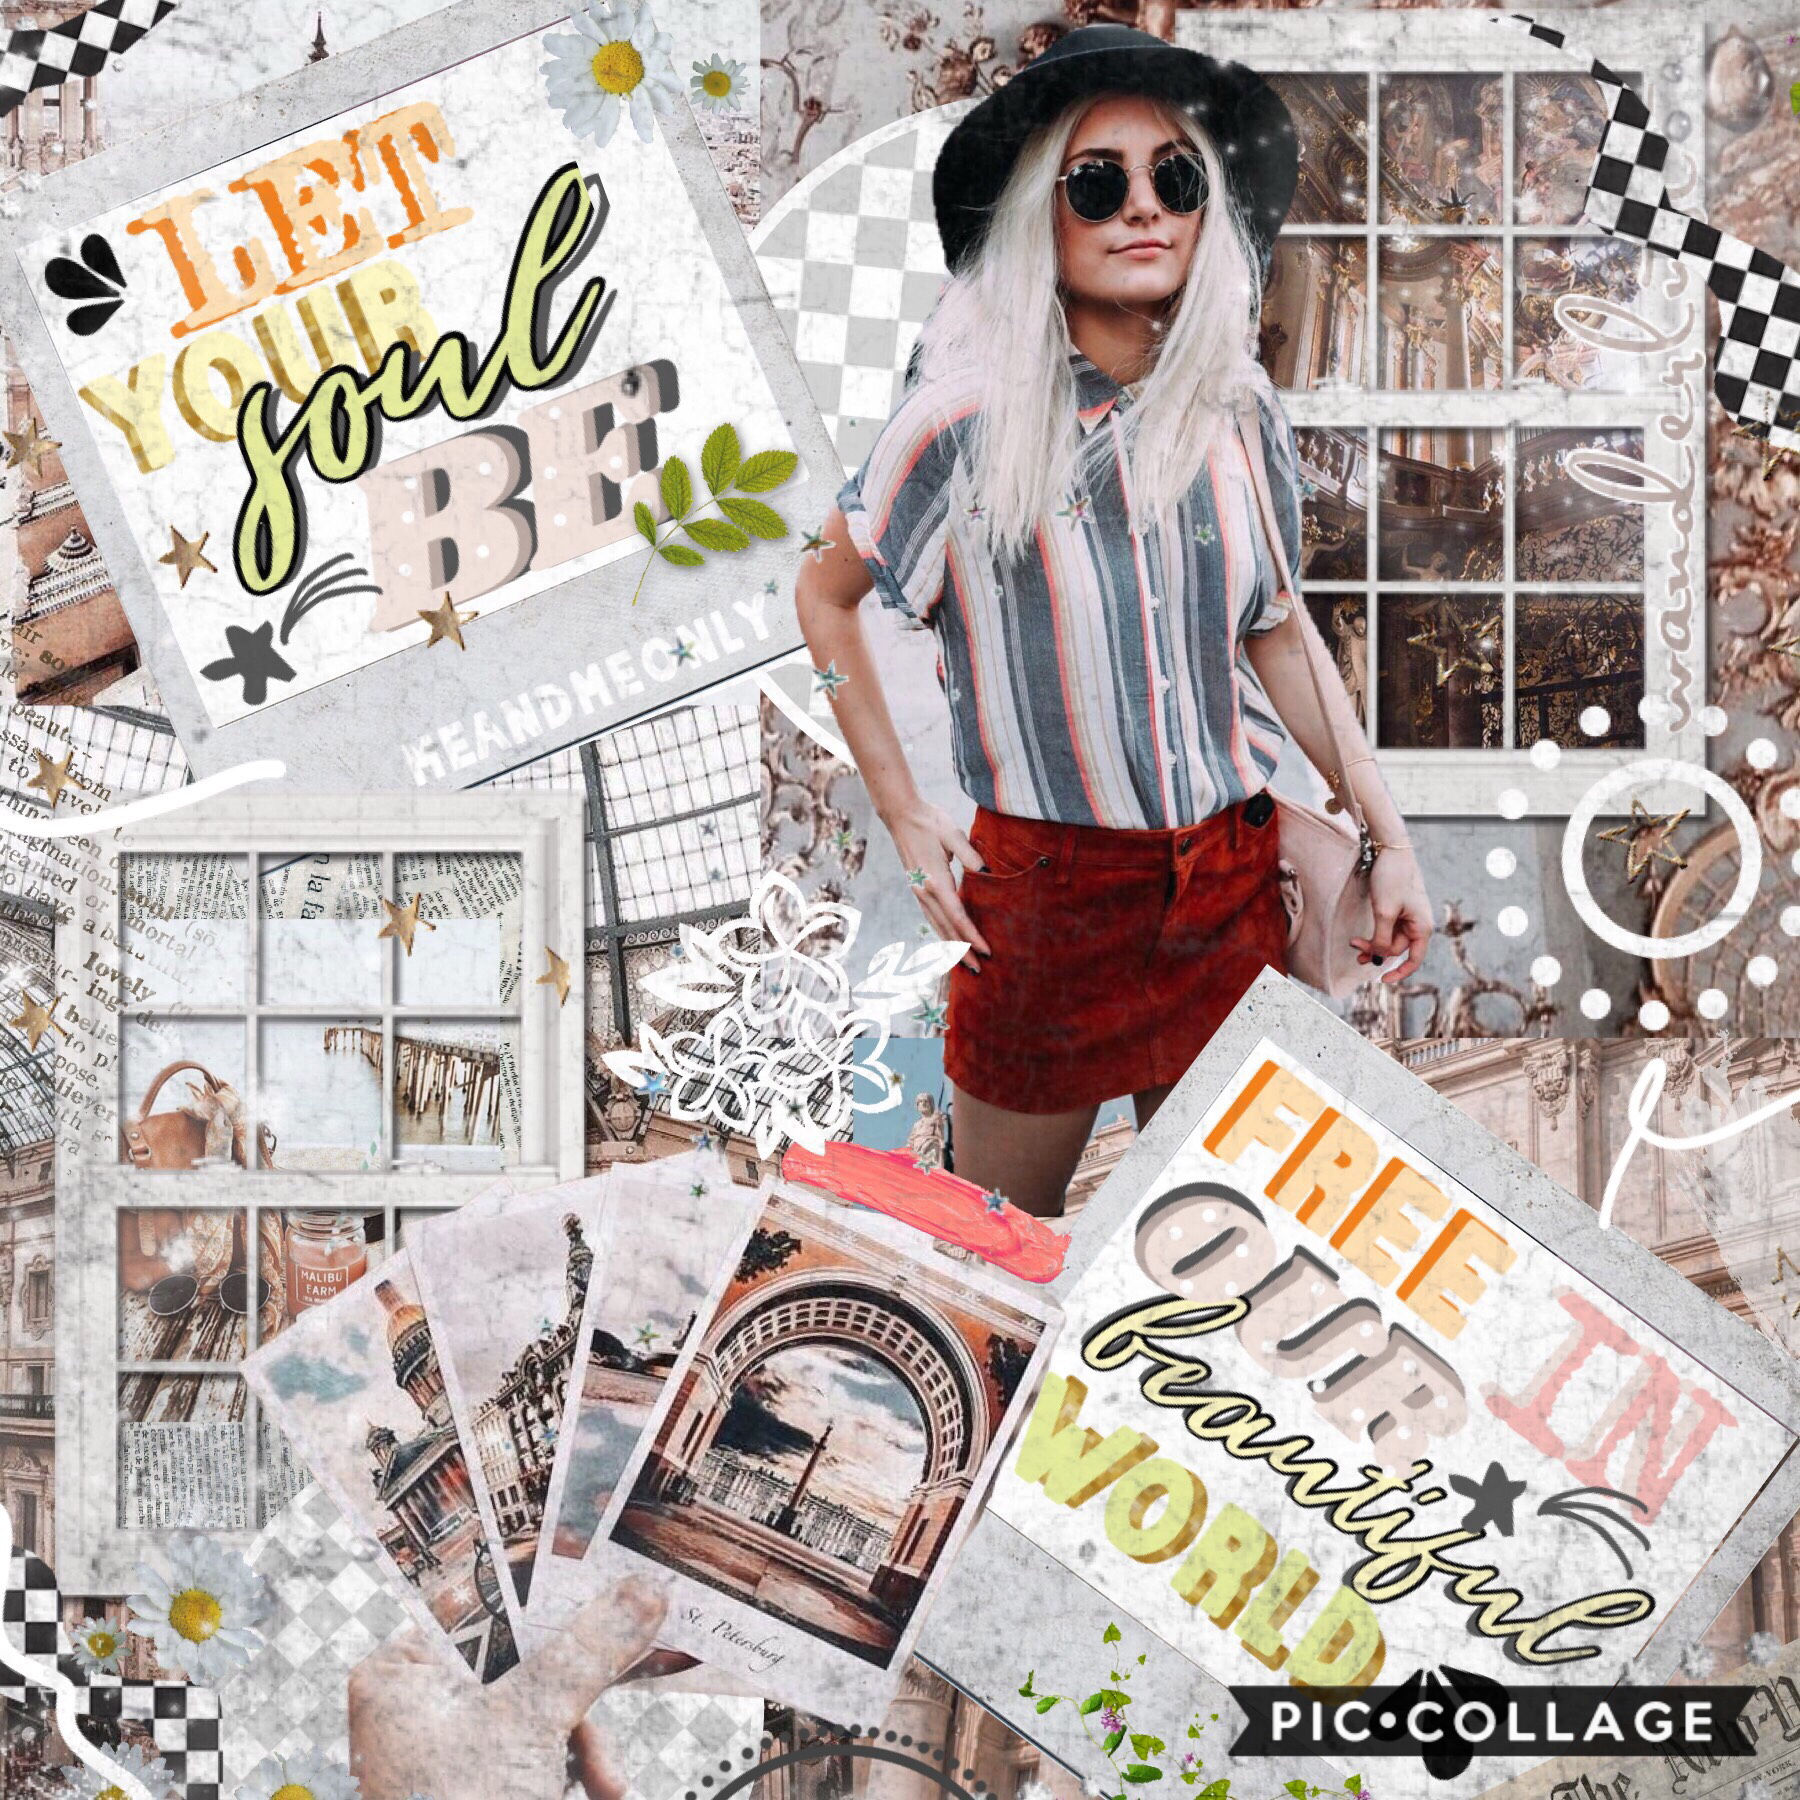 shoutout to @shootingstars-, @_britkitten_, @rhapsodie, @timetraveler, everyone go follow these amazing and talented people!! hope you are all having a wonderful day💞🌿posting another collage soon💘🦋